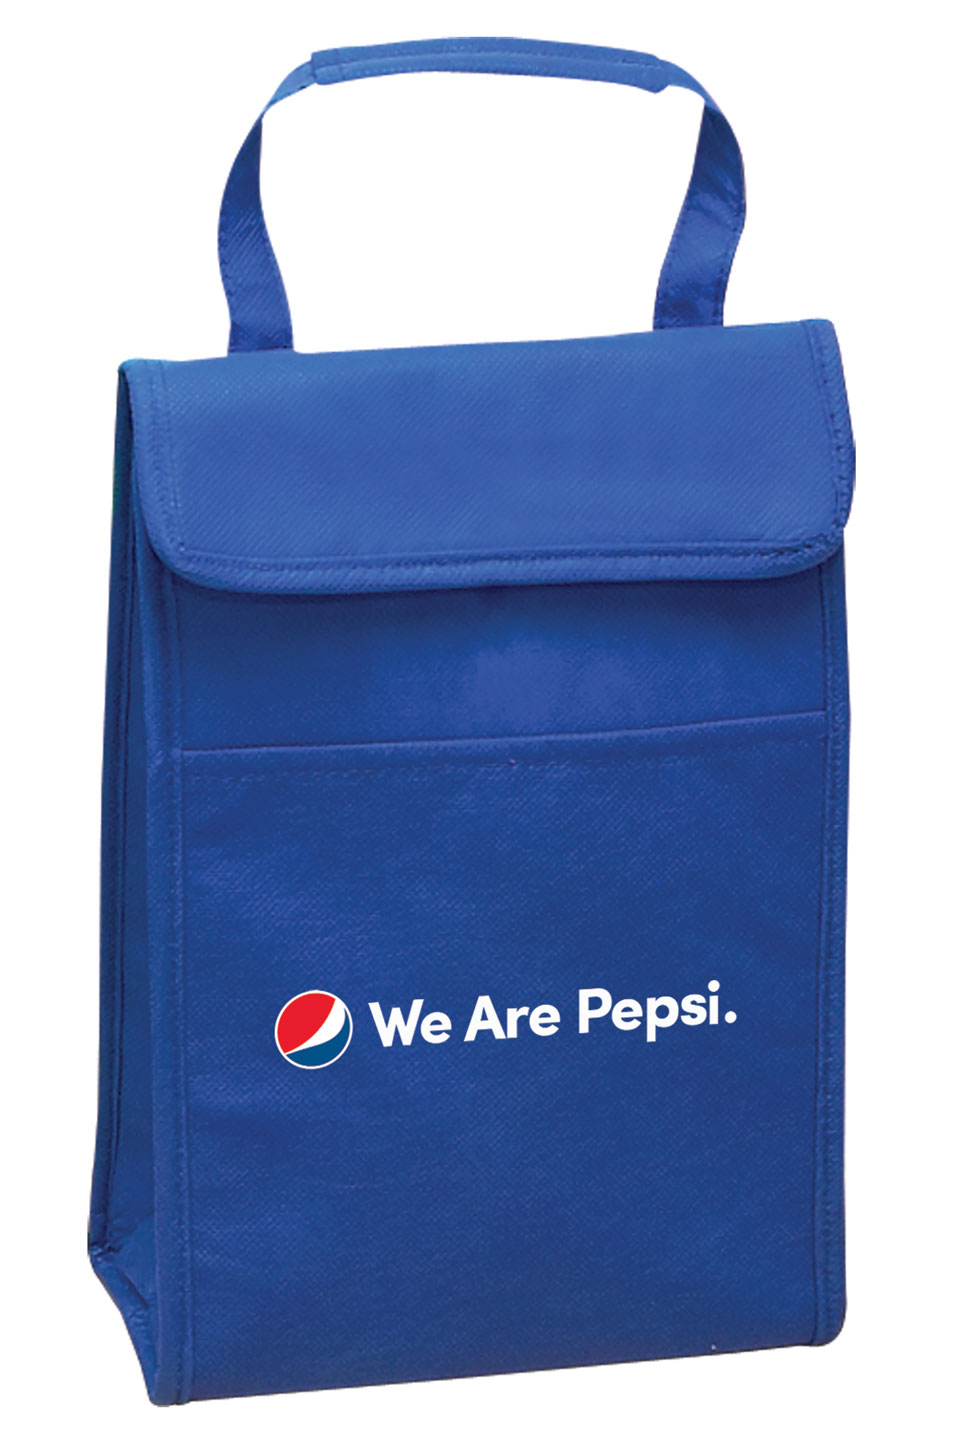 Non Woven Insulated Lunch Cooler - We Are Pepsi